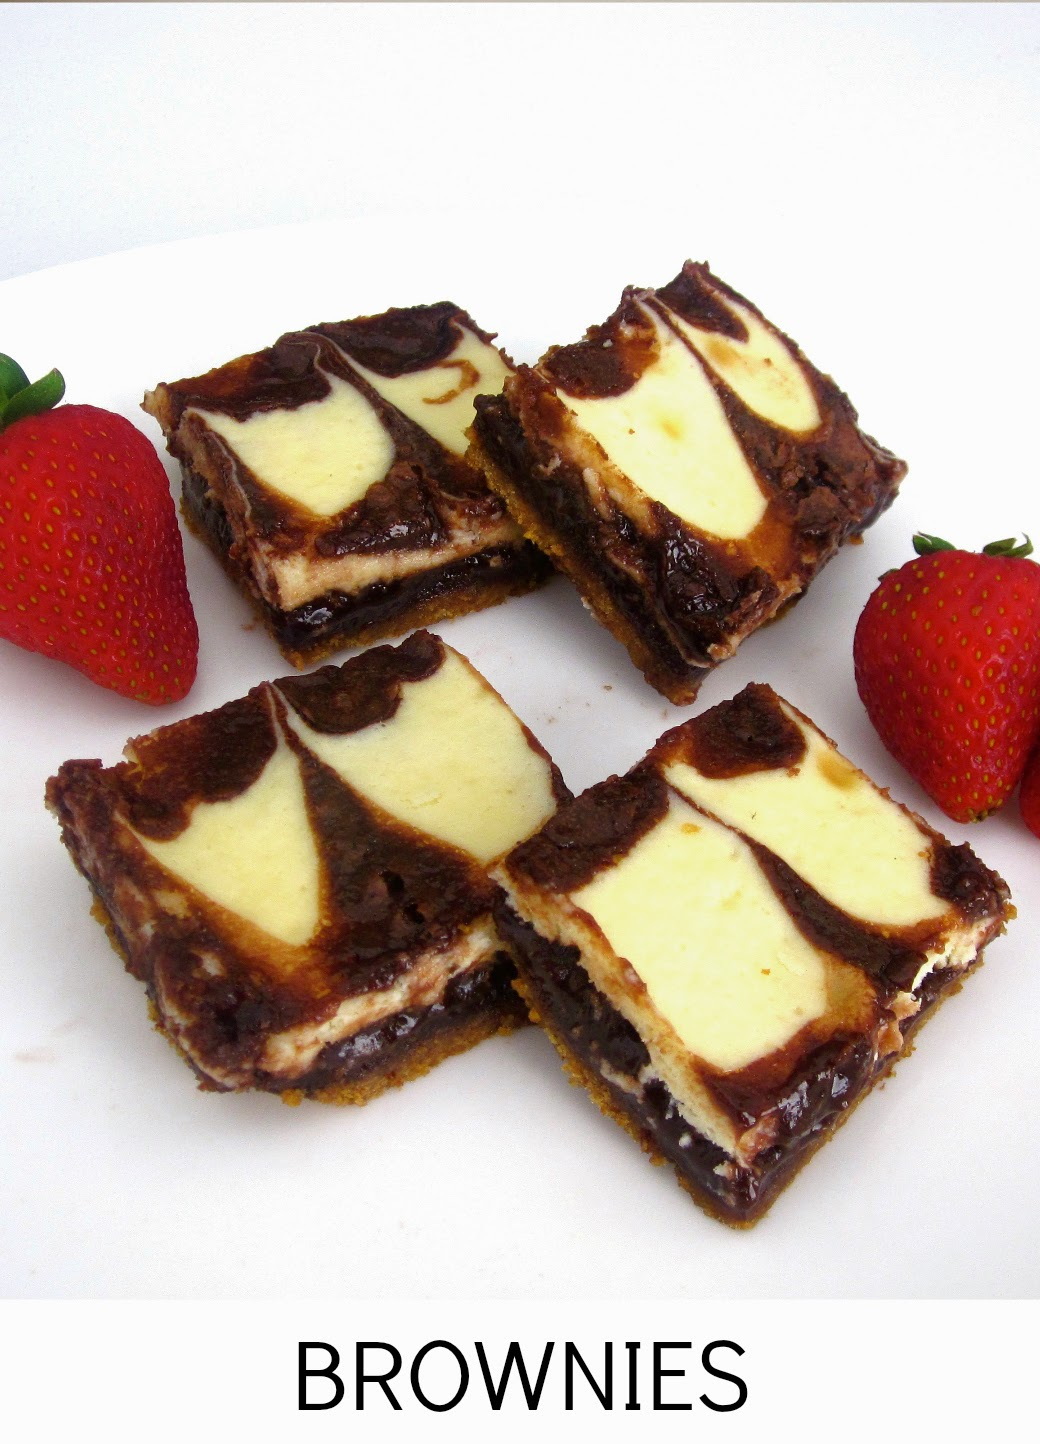 http://blog.dollhousebakeshoppe.com/2011/01/recipes-brownies.html